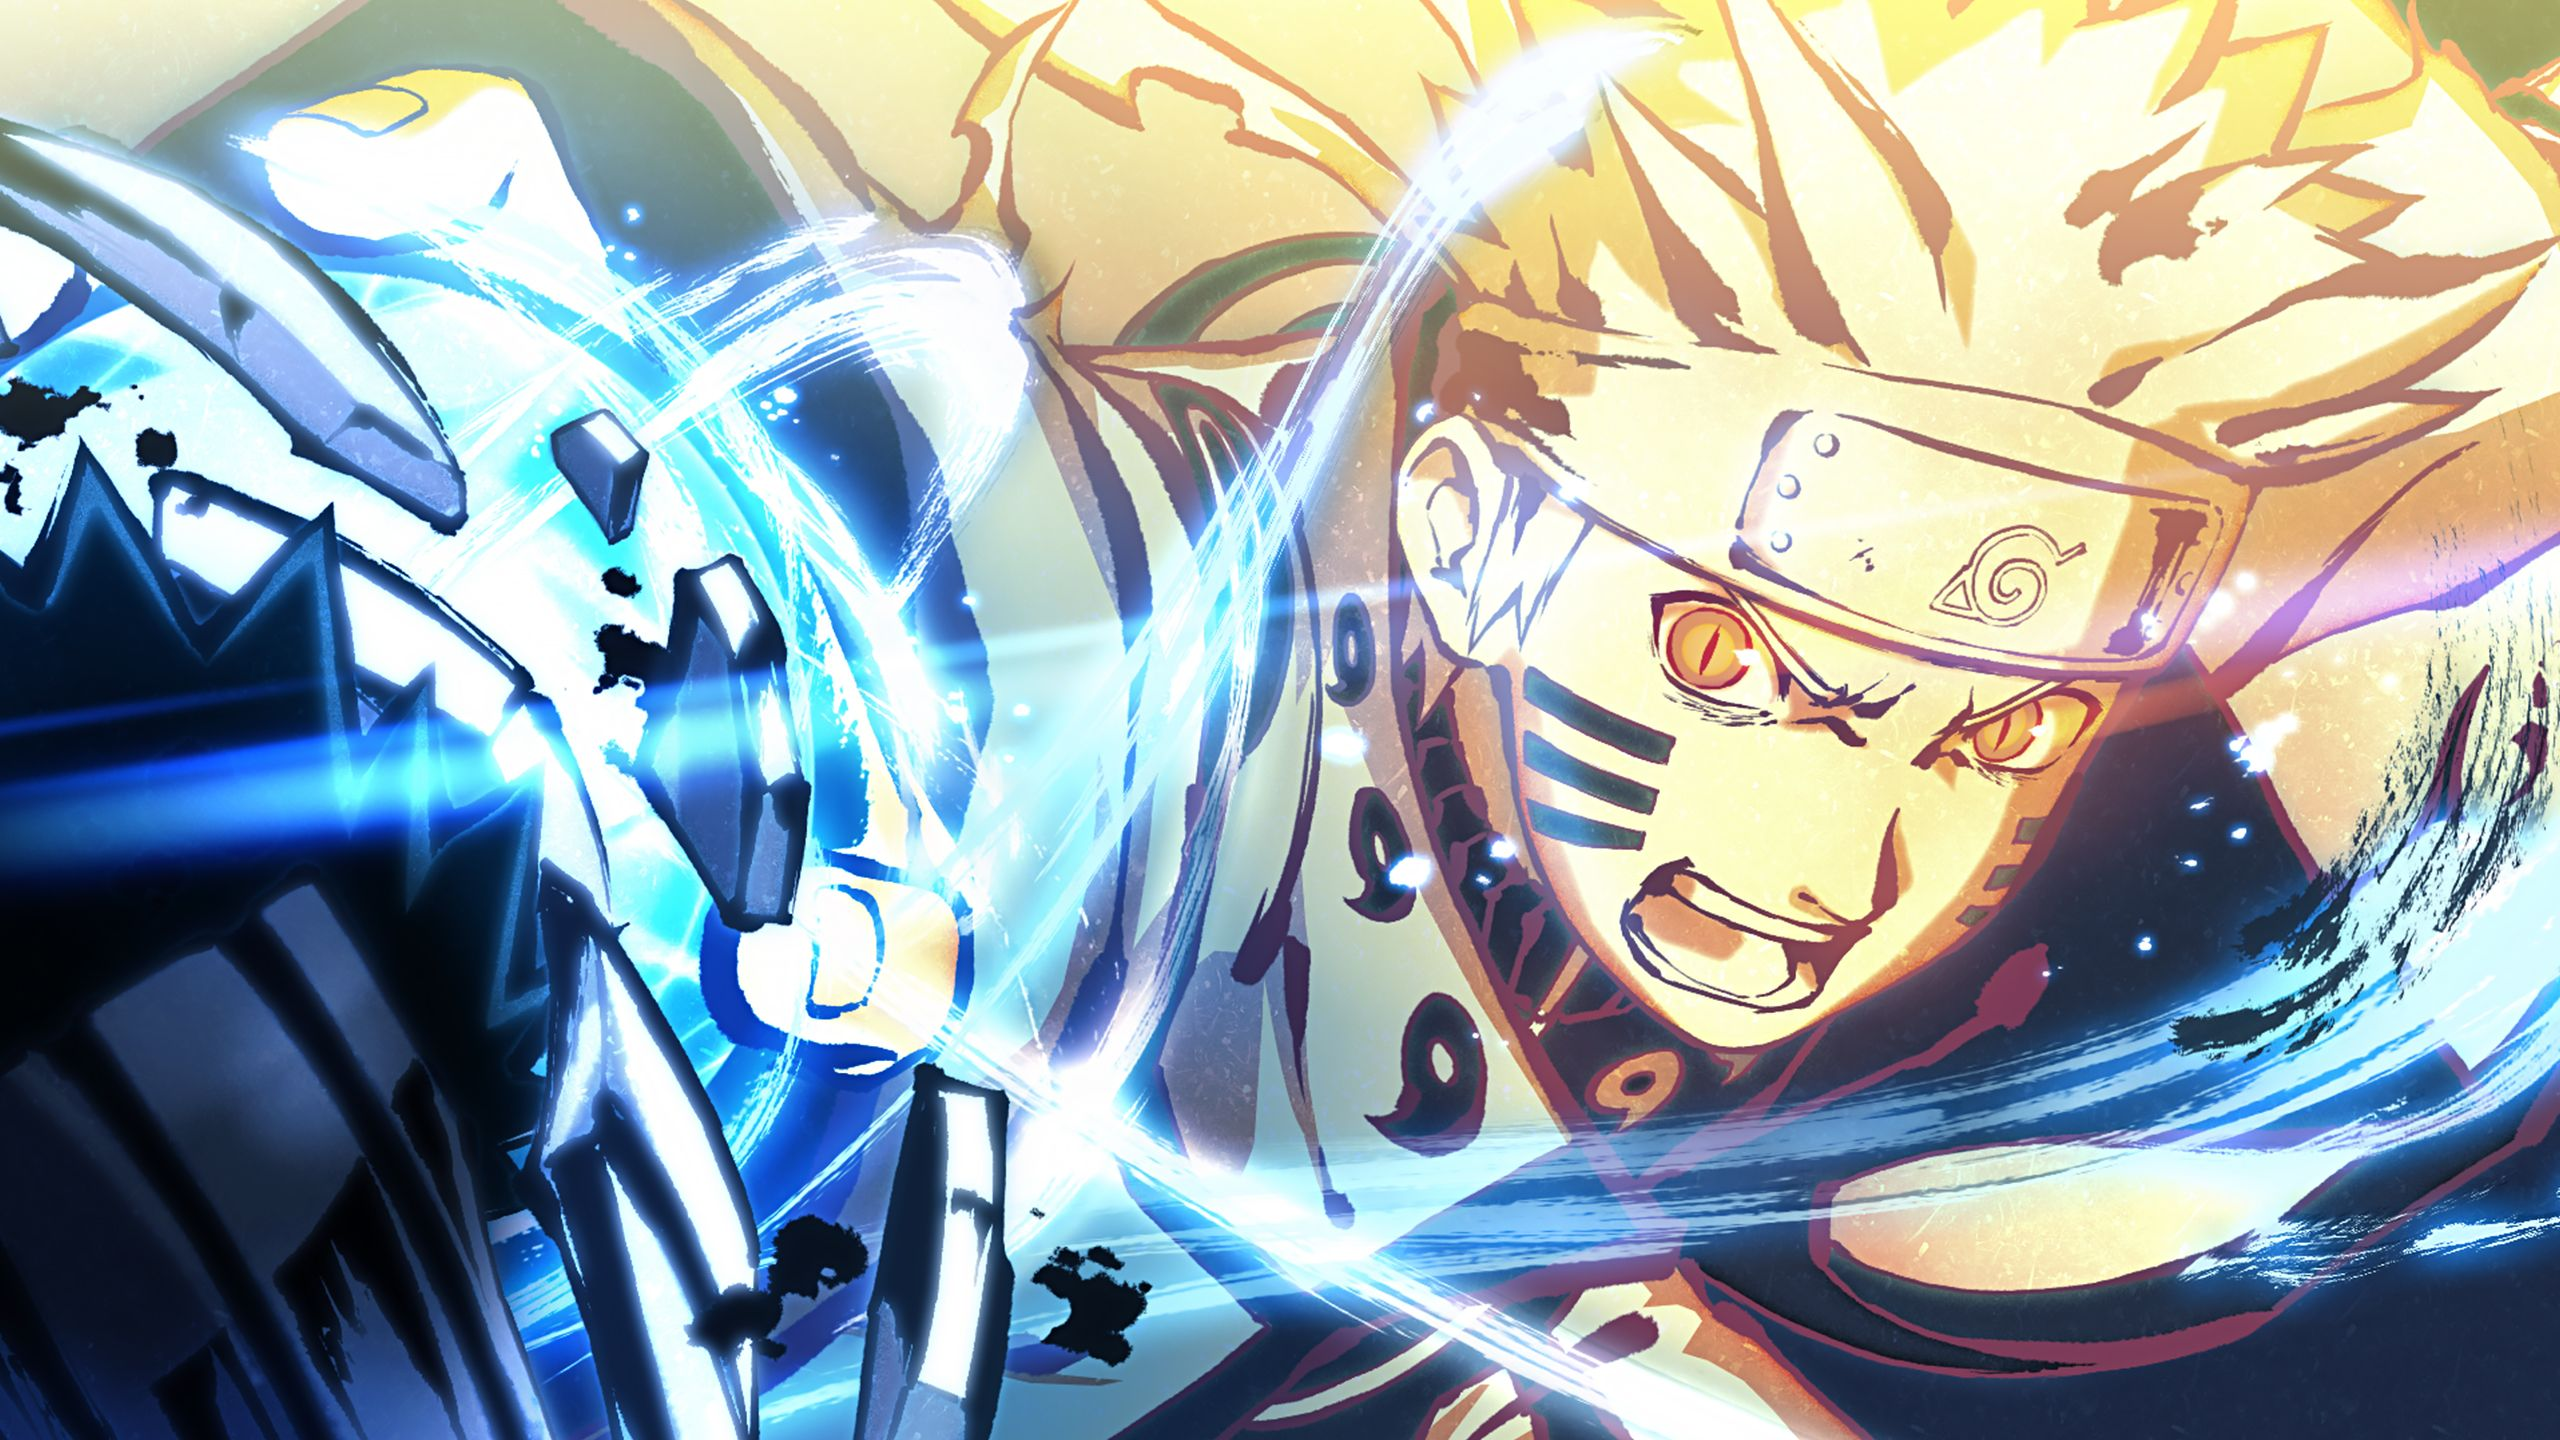 Anime 4k Naruto Ps4 Wallpapers - Wallpaper Cave